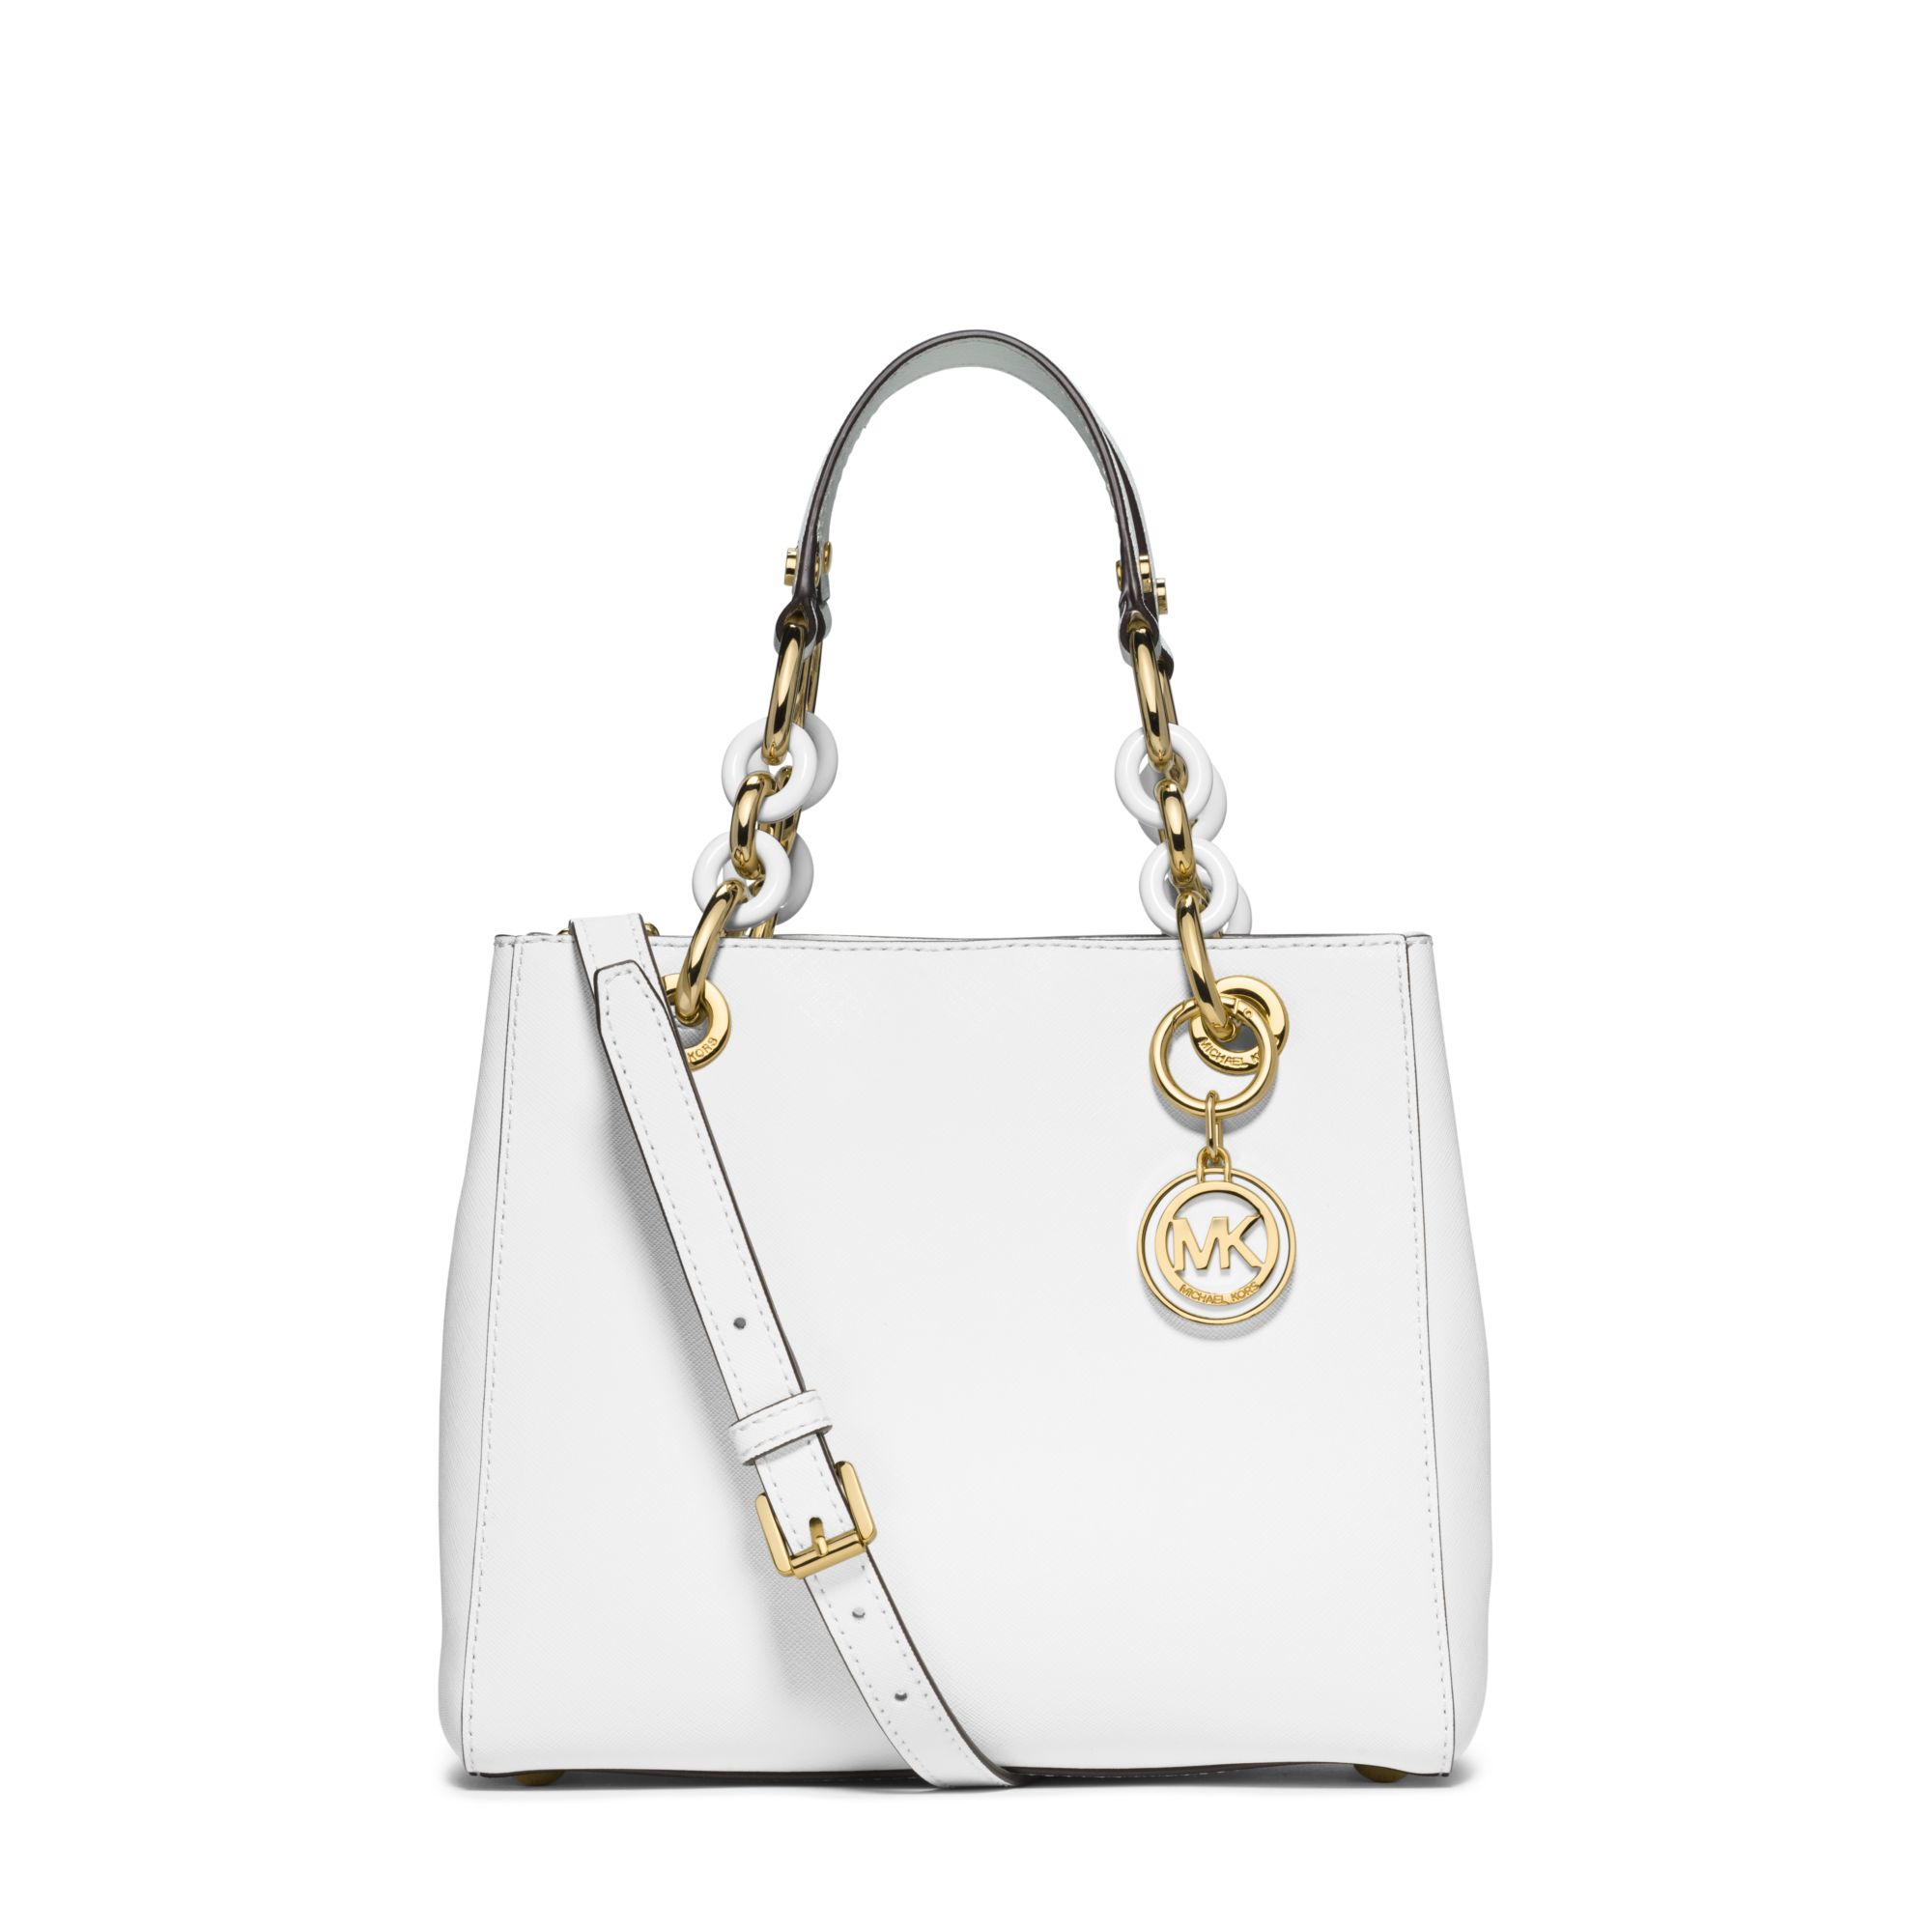 066577086709 Lyst - Michael Kors Cynthia Small Leather Satchel in White